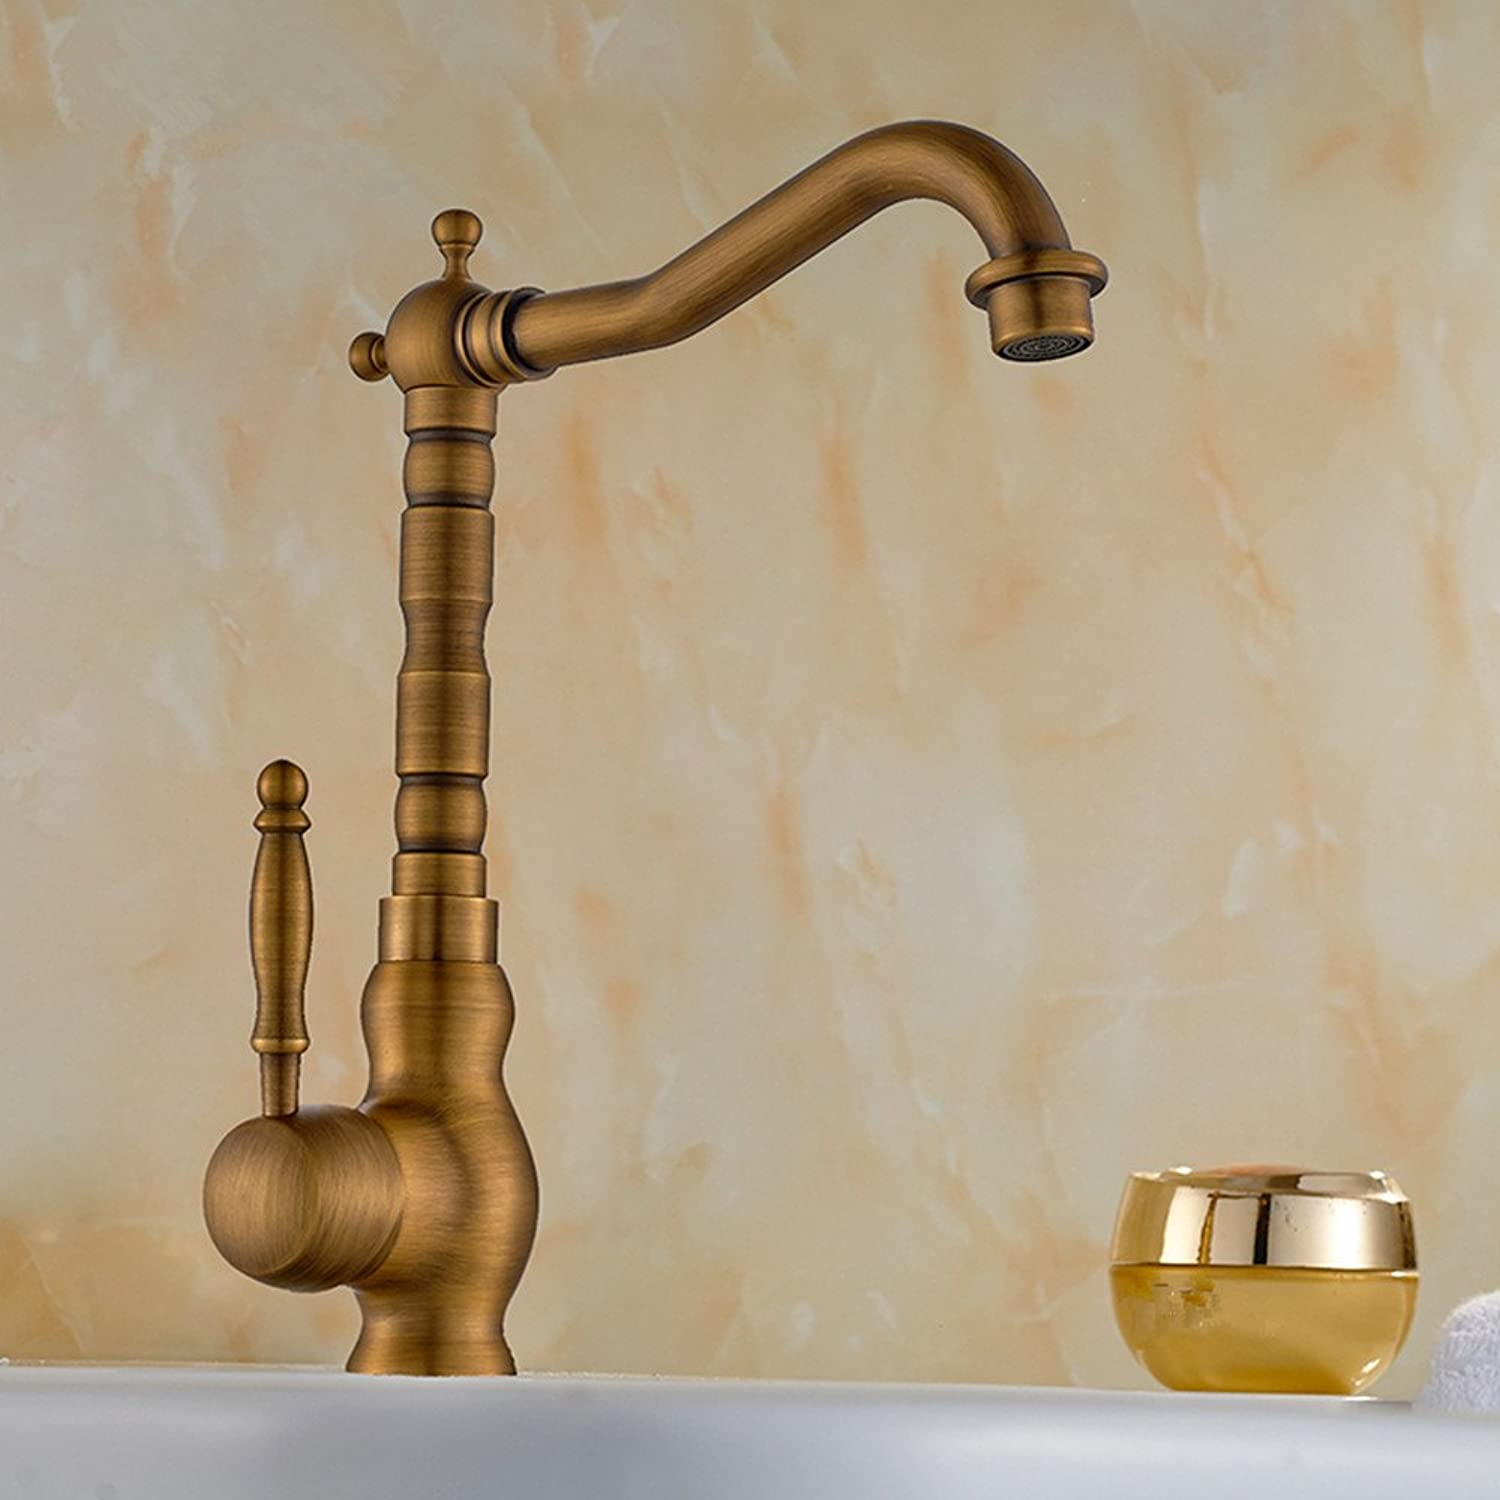 Hlluya Professional Sink Mixer Tap Kitchen Faucet To redate the antique basin faucet antique faucet full copper hot and cold Bathroom Cabinet basin, High